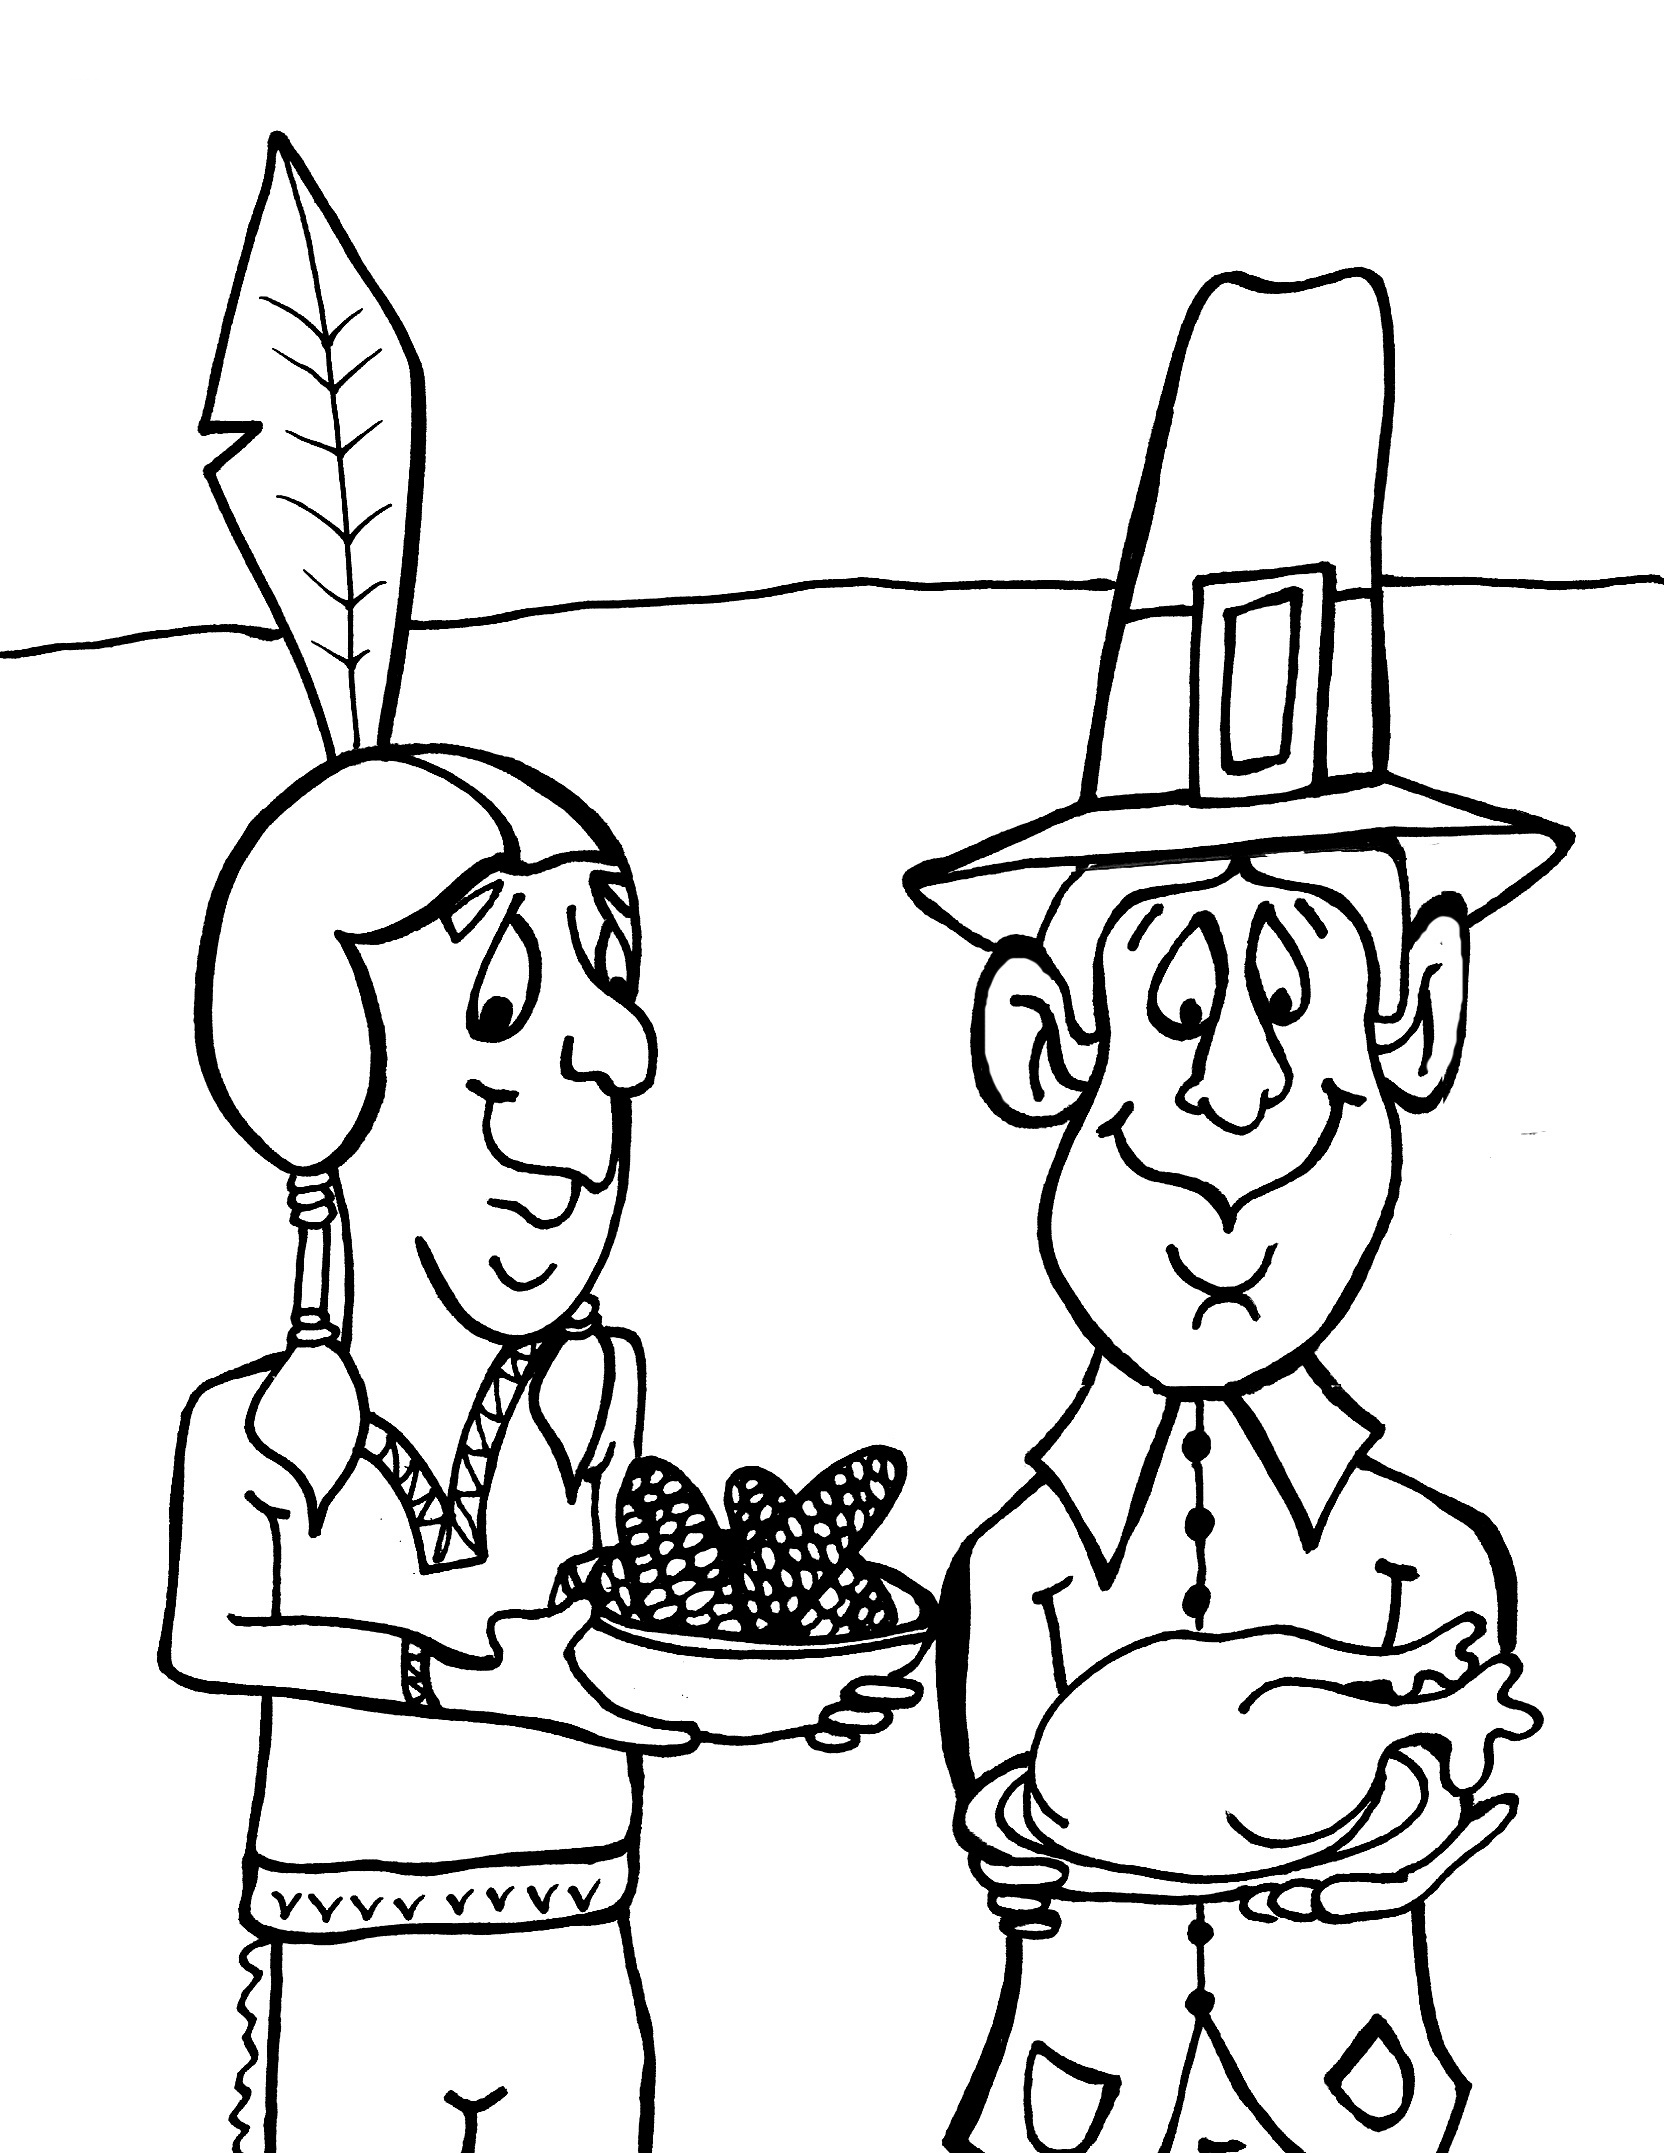 coloring thanksgiving pictures free printable thanksgiving coloring pages for kids pictures coloring thanksgiving